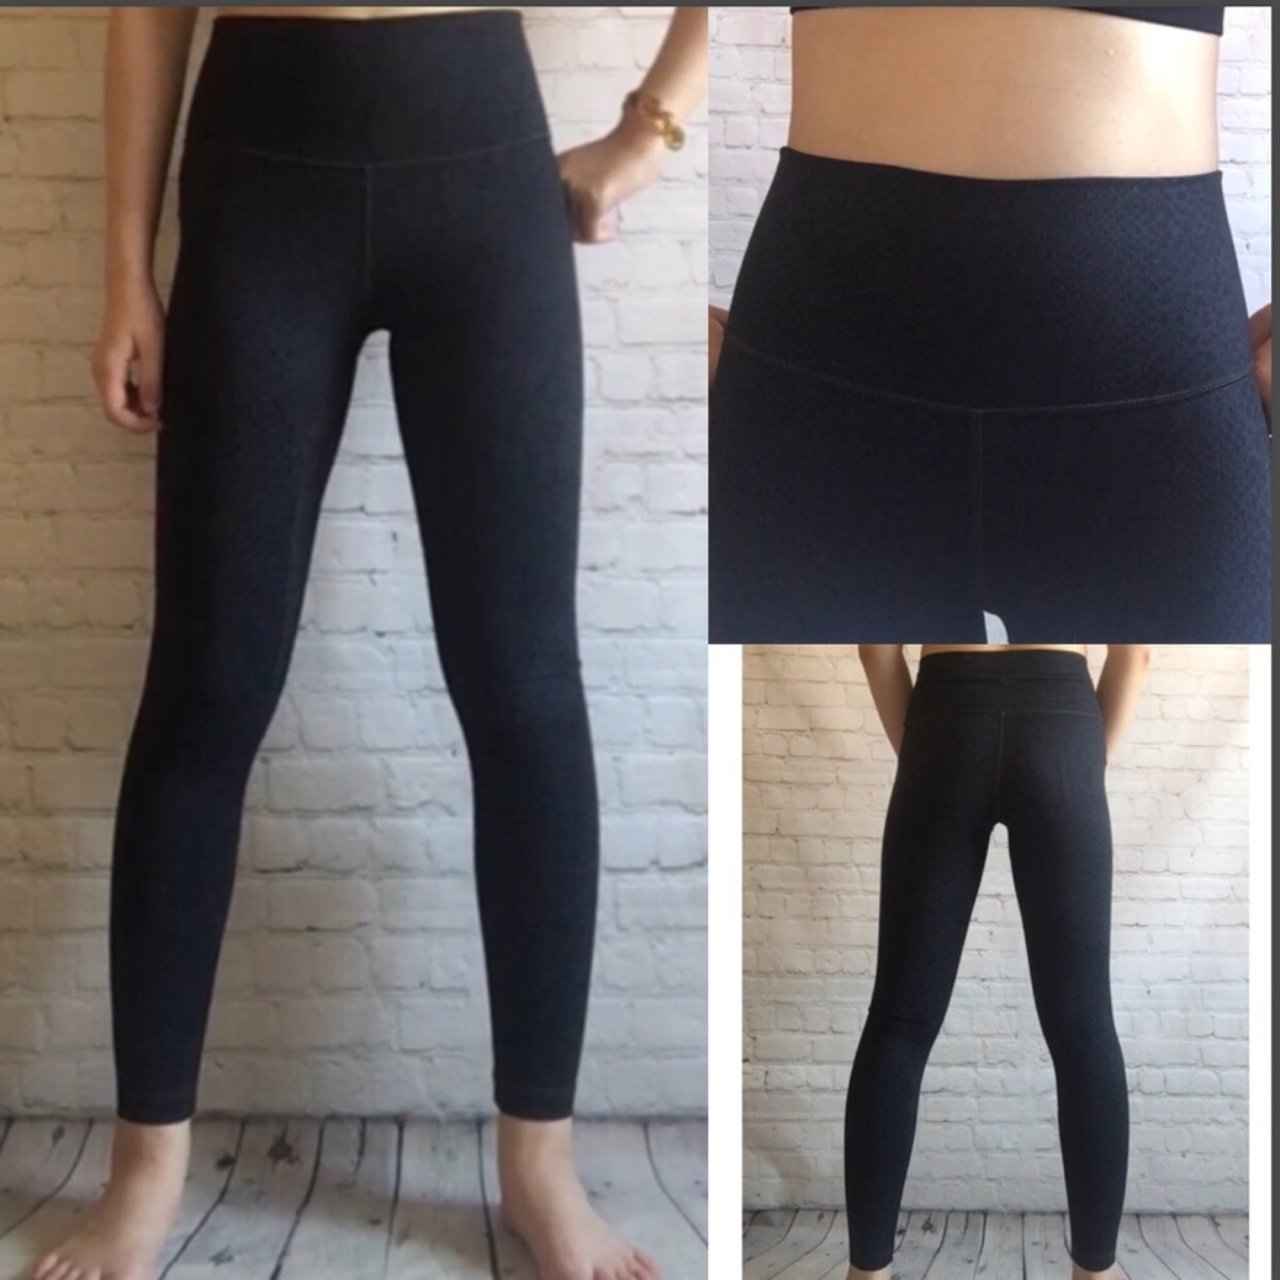 3b1cd05c49 @kwanaka. 10 months ago. New York, United States. Lululemon High Waisted Black  Printed yoga legging